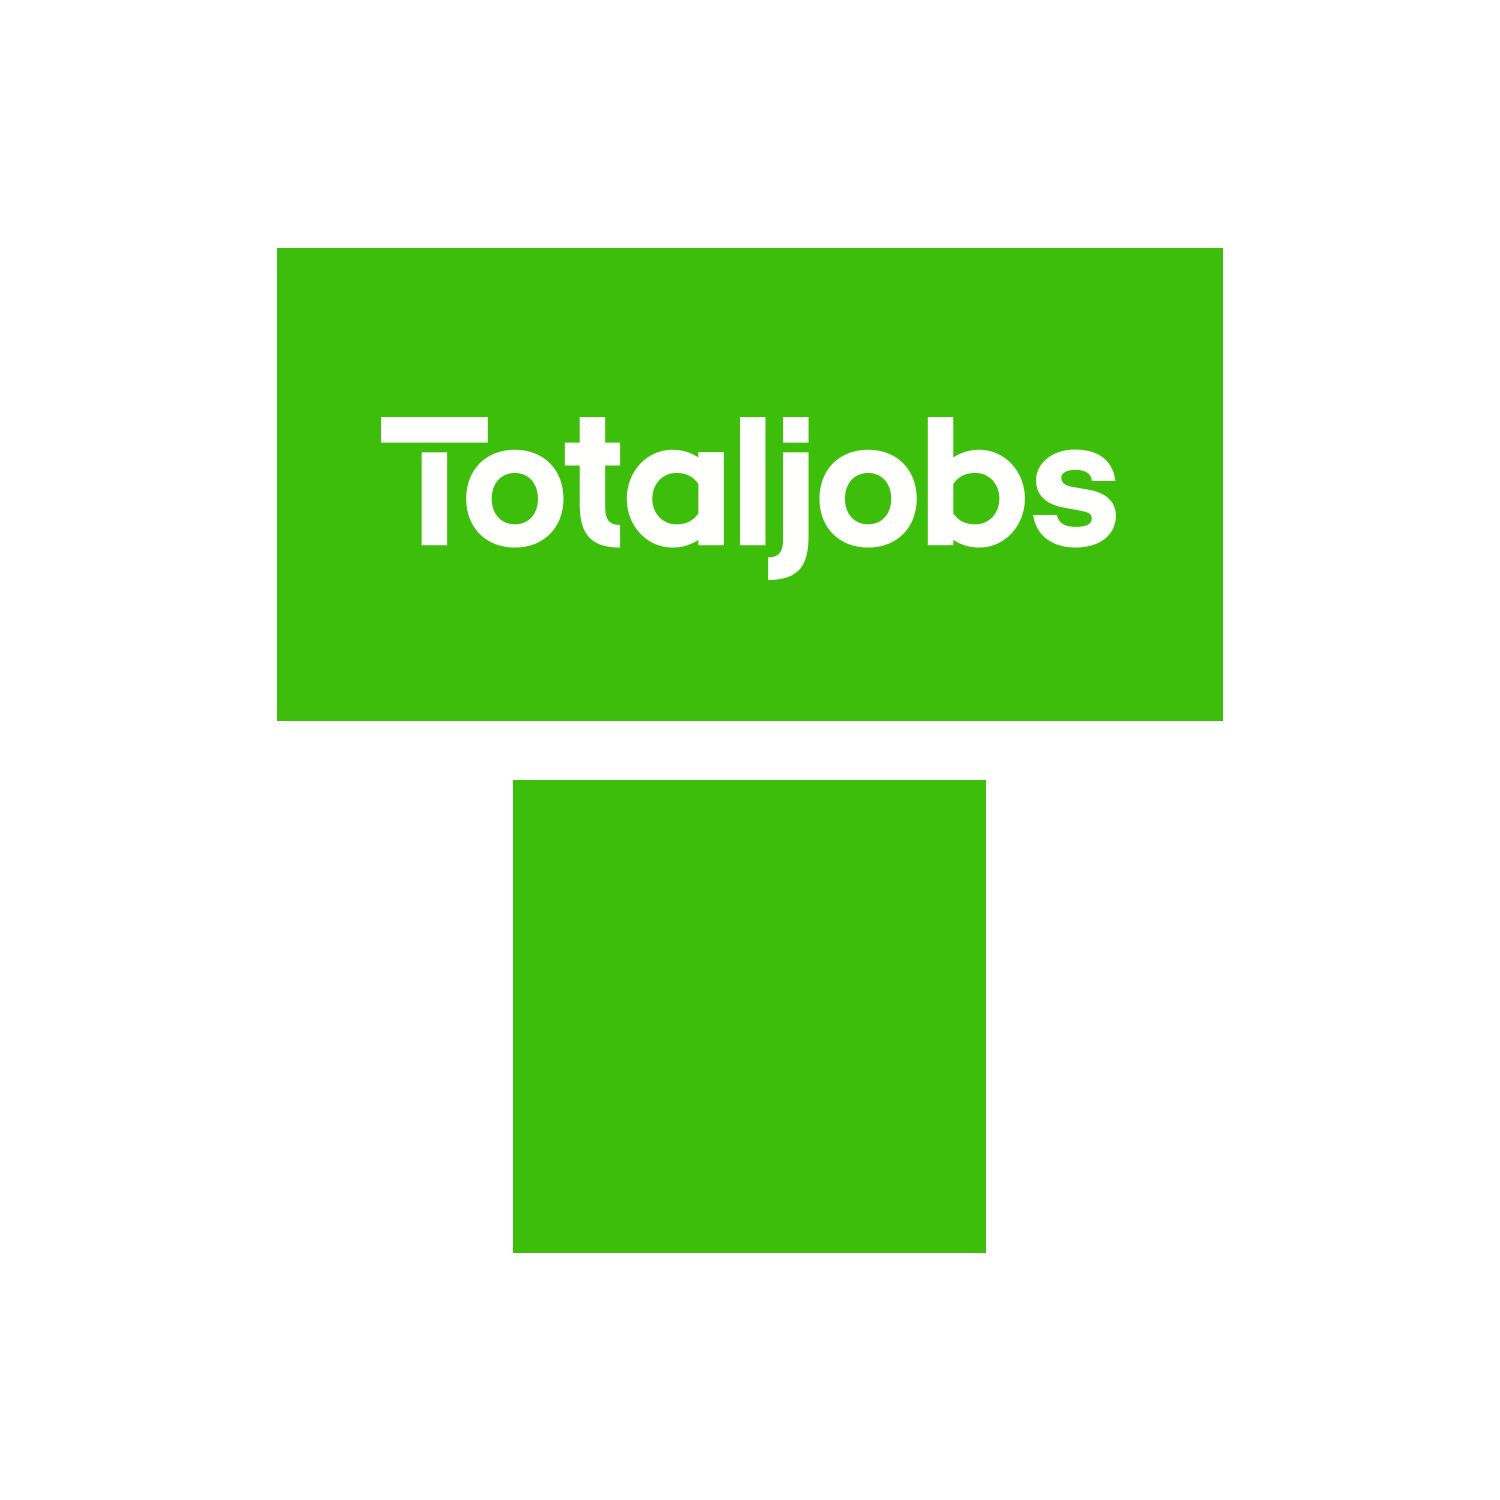 SEO Executive / Digital Marketing Executive in Maney, Sutton Coldfield (B73) | Wallace Hind Talent Solutions - totaljobs